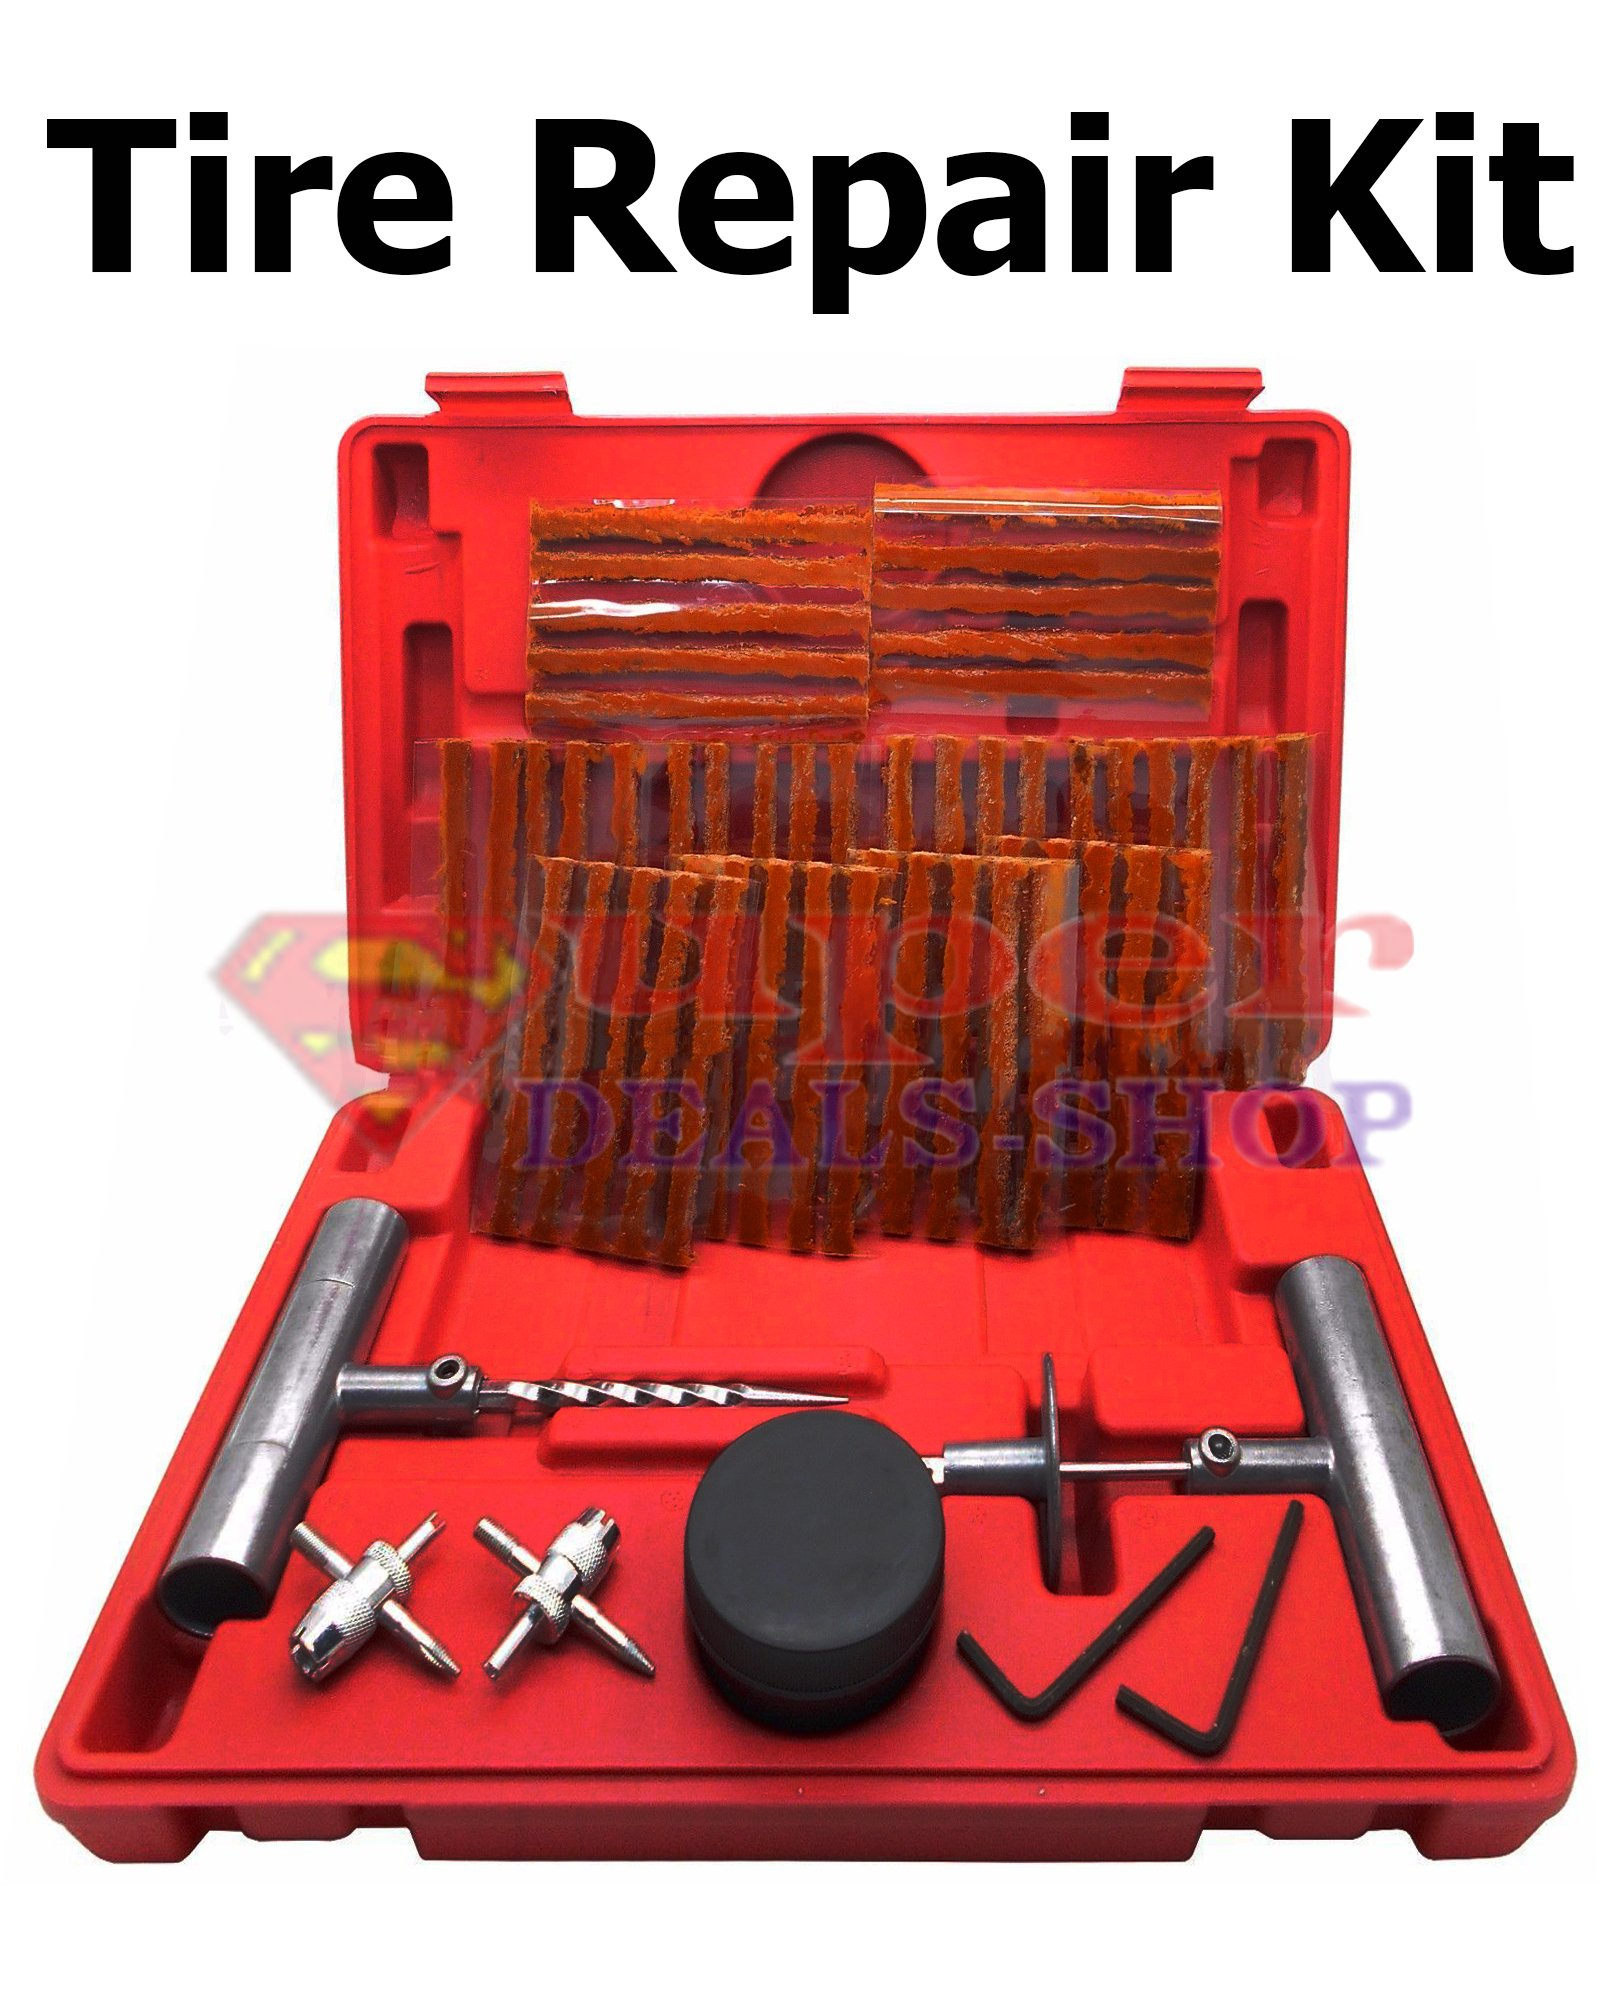 57 Pcs Tire Repair Kit DIY Flat Plugs, T-handle Insert & Spiral Probe Tool, Knife, Sealing Lubricant, Tire Puncture Repair Strips/Strings Tyres Repair Patch Set Car Truck etc. Super-Deals-Shop